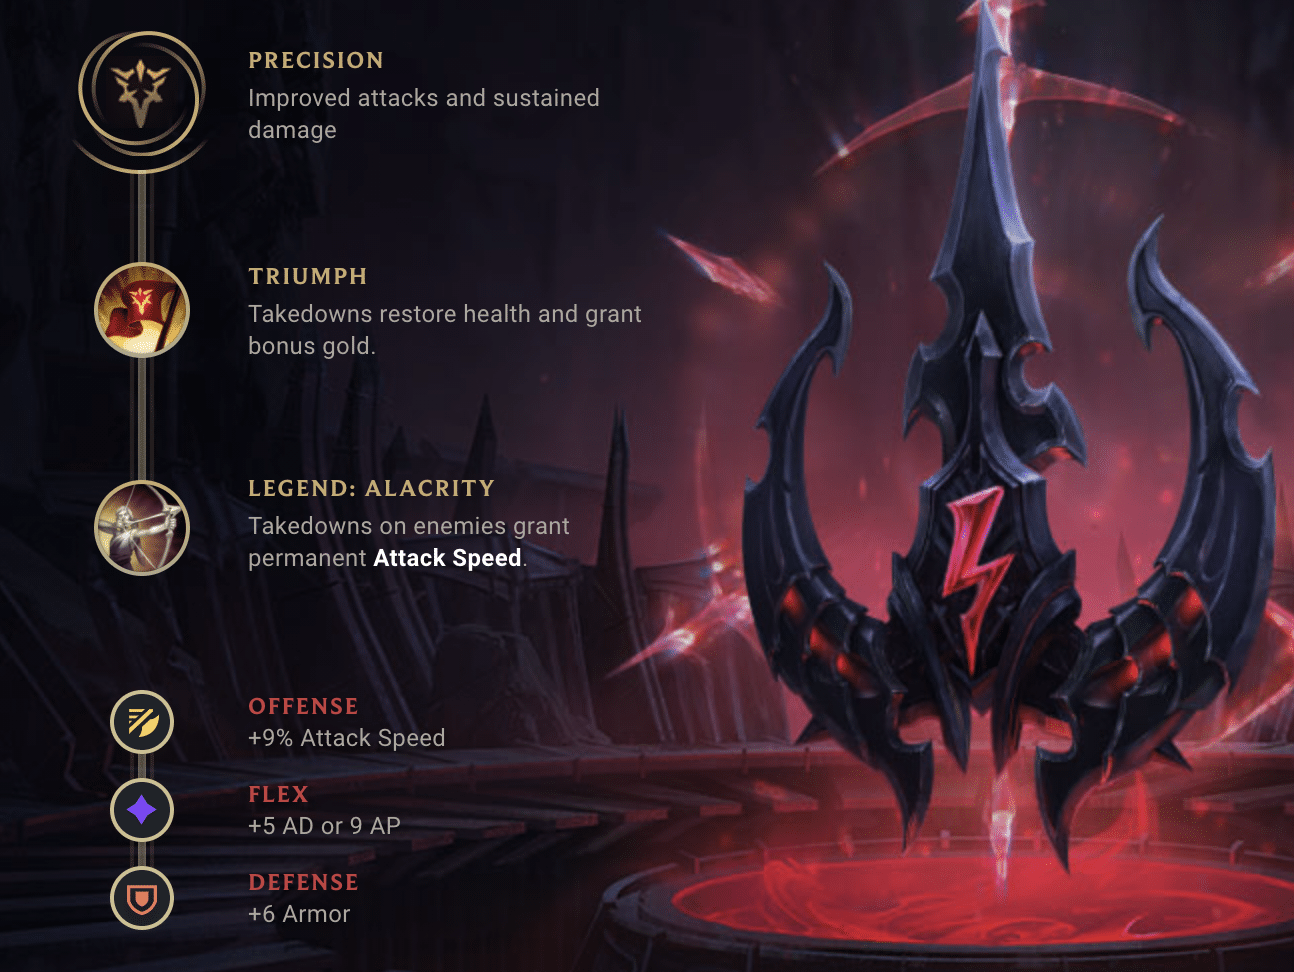 League adaptive force was released onto the summoners rift back in 2018. Wow, we've been using adaptive force in LoL for more than 2 years now! Time does fly fast. Here's a quick guide on adaptive force in League of Legends. Hopefully, this article will help you learn more about adaptive force, how and when to use it!